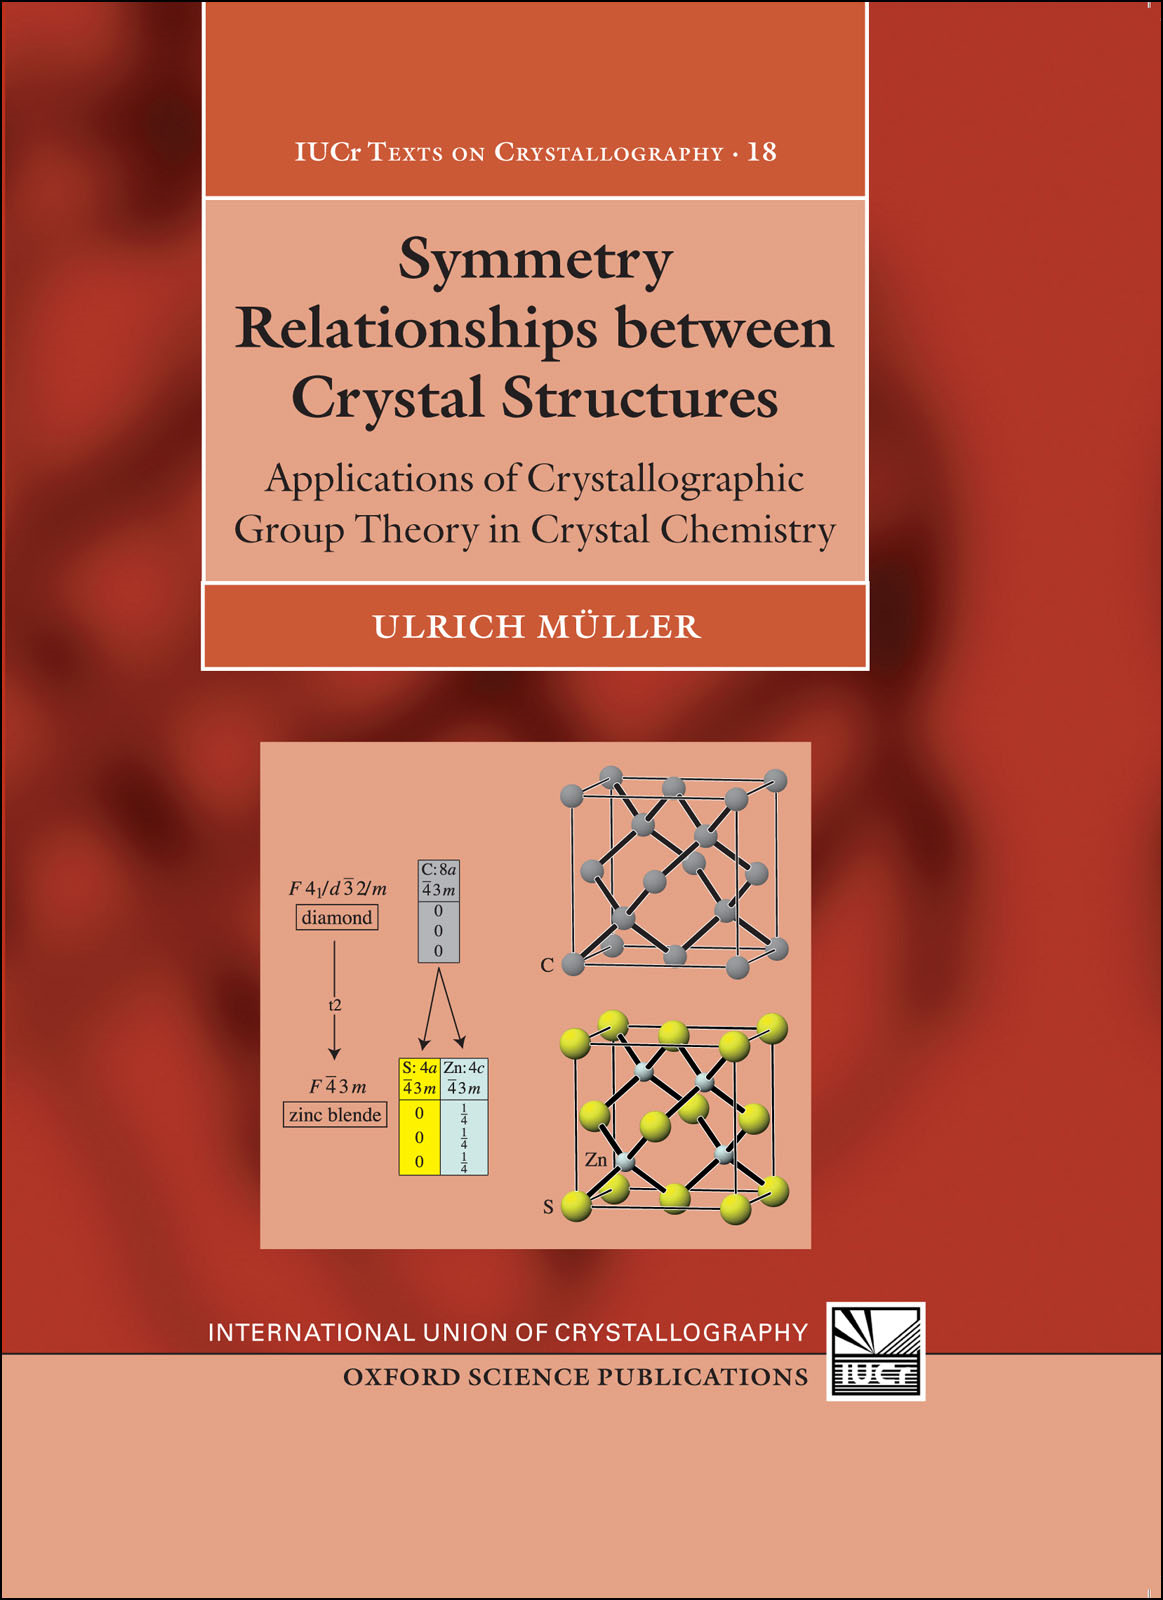 Symmetry Relationships between Crystal Structures: Applications of Crystallographic Group Theory in Crystal Chemistry